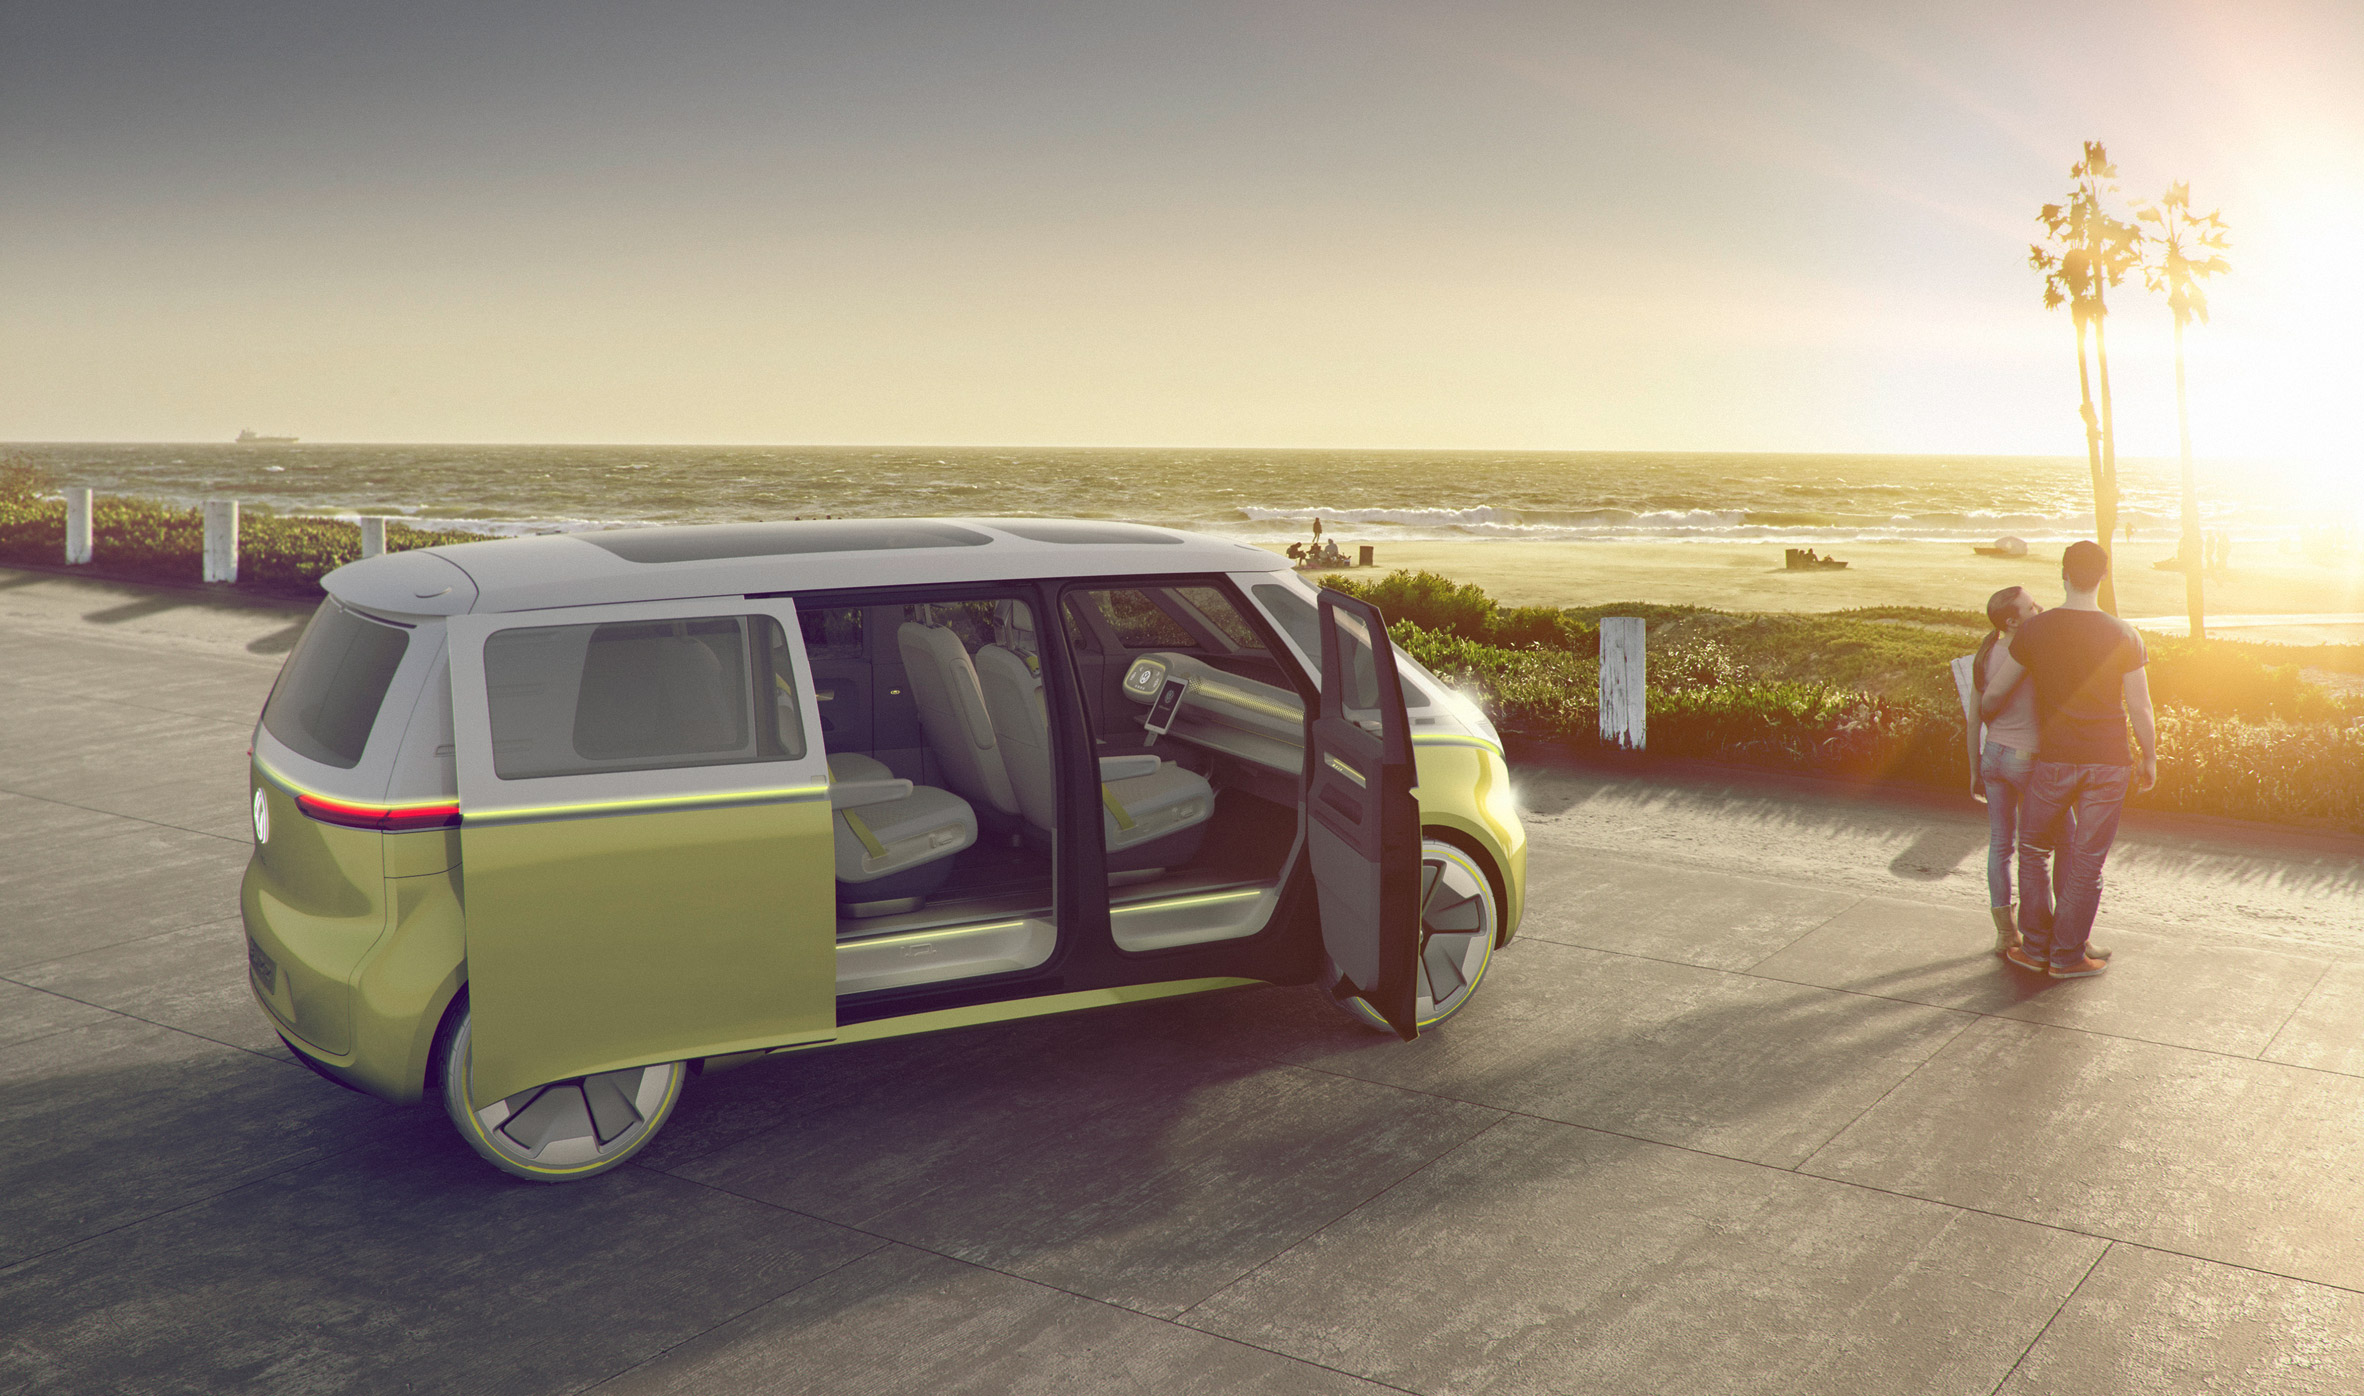 Volkswagen unveils self-driving electric VW Microbus